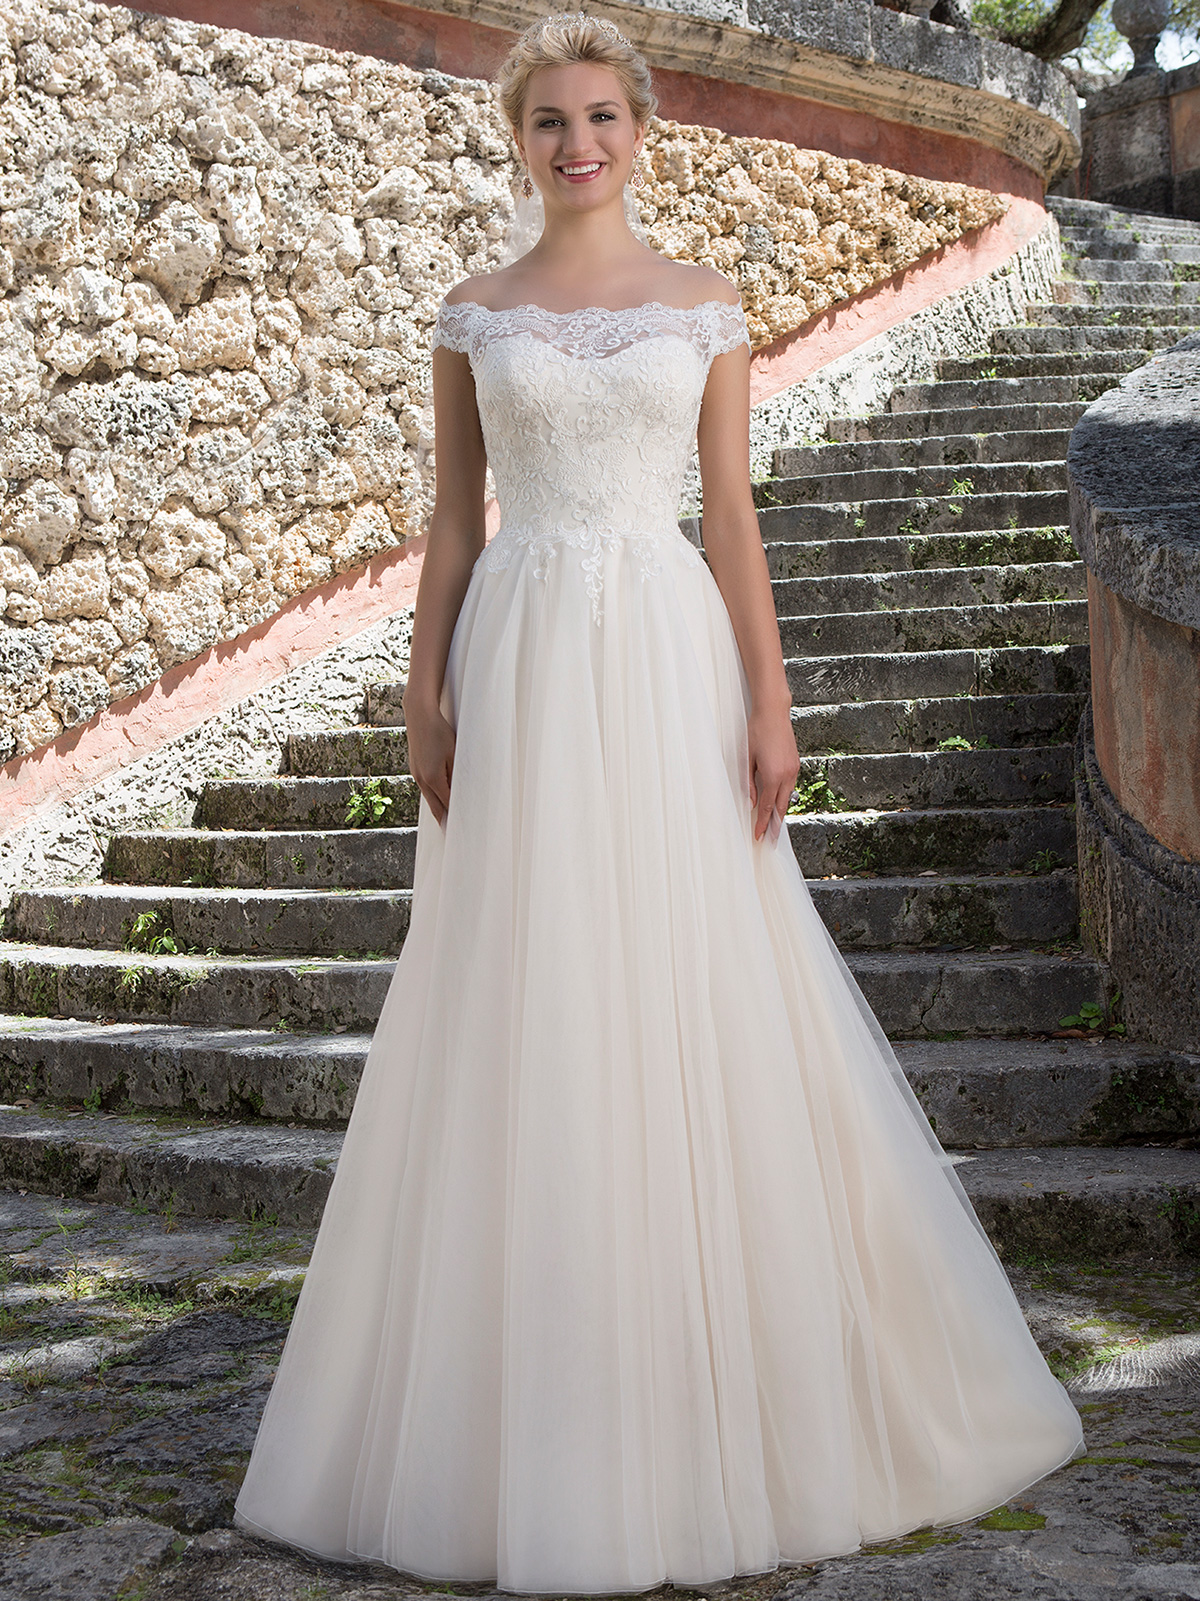 Sincerity 3889 Tulle Ball Gown Bridal Dress|DimitraDesigns.com